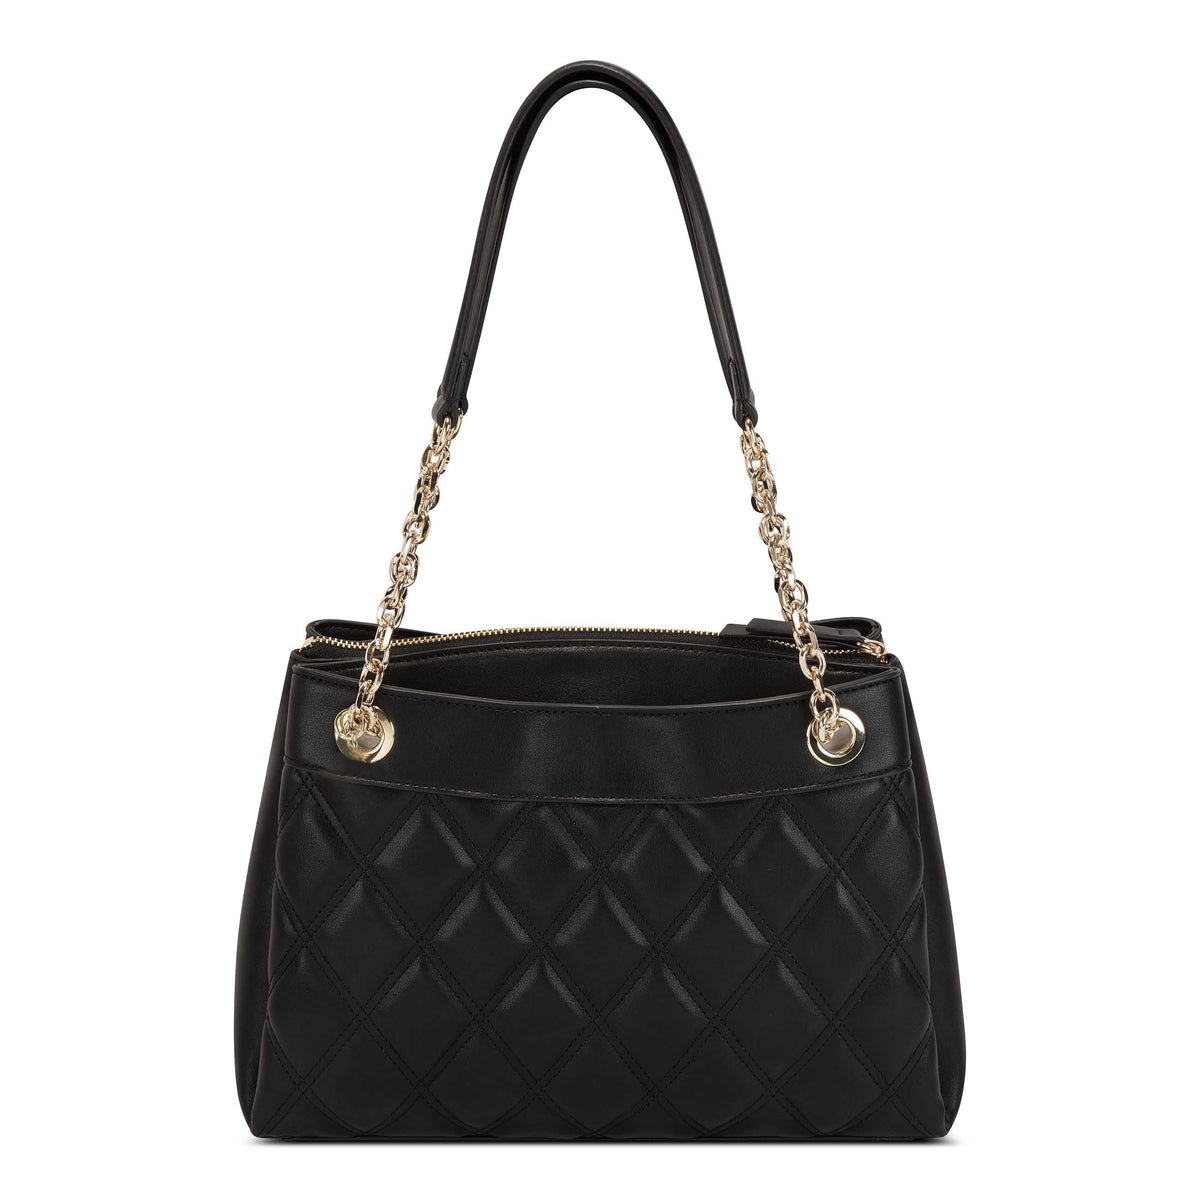 Emerson Jet Set Satchel